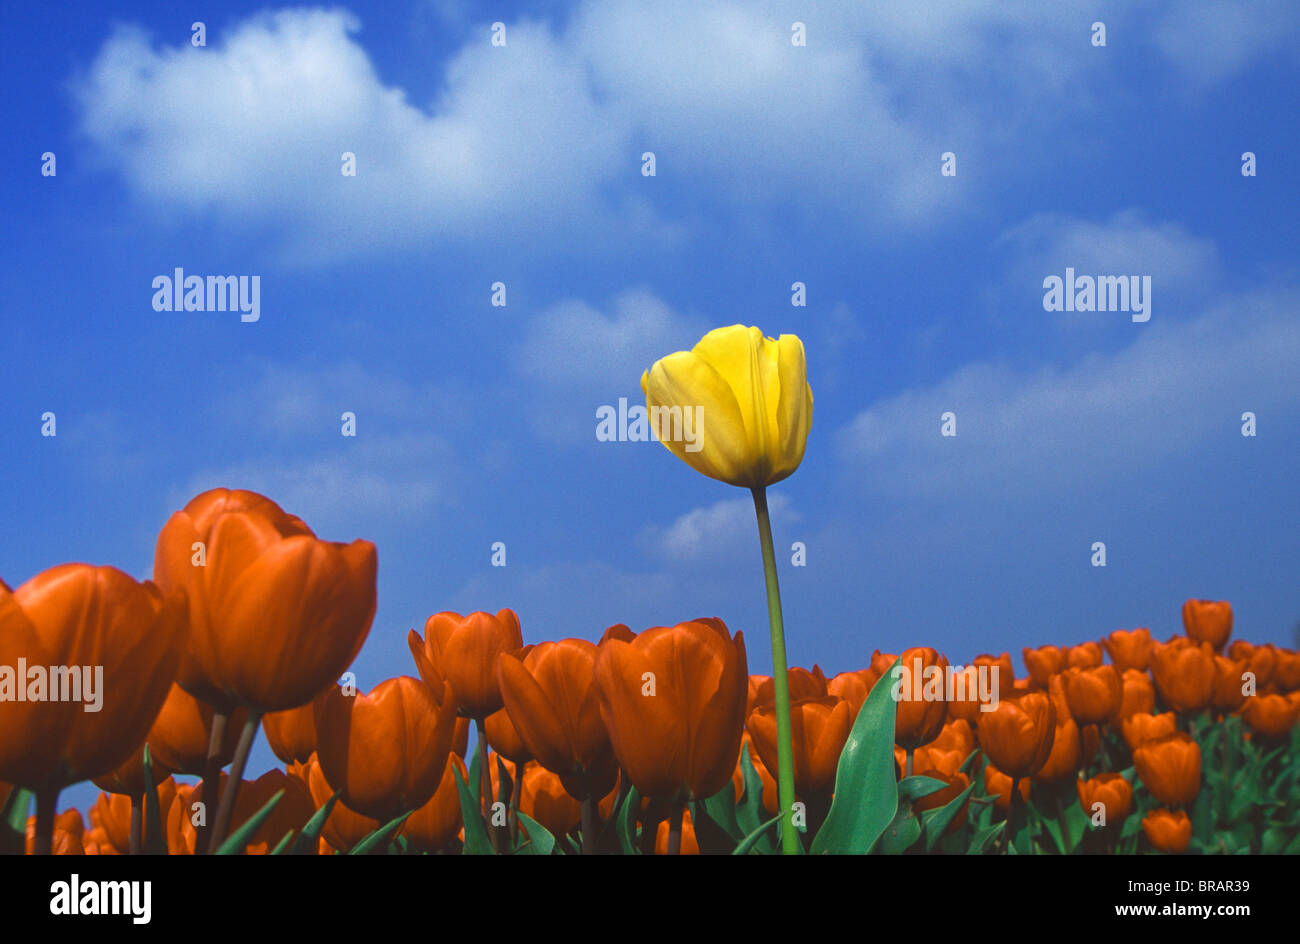 Yellow tulip amongst a sea of red tulips. - Stock Image